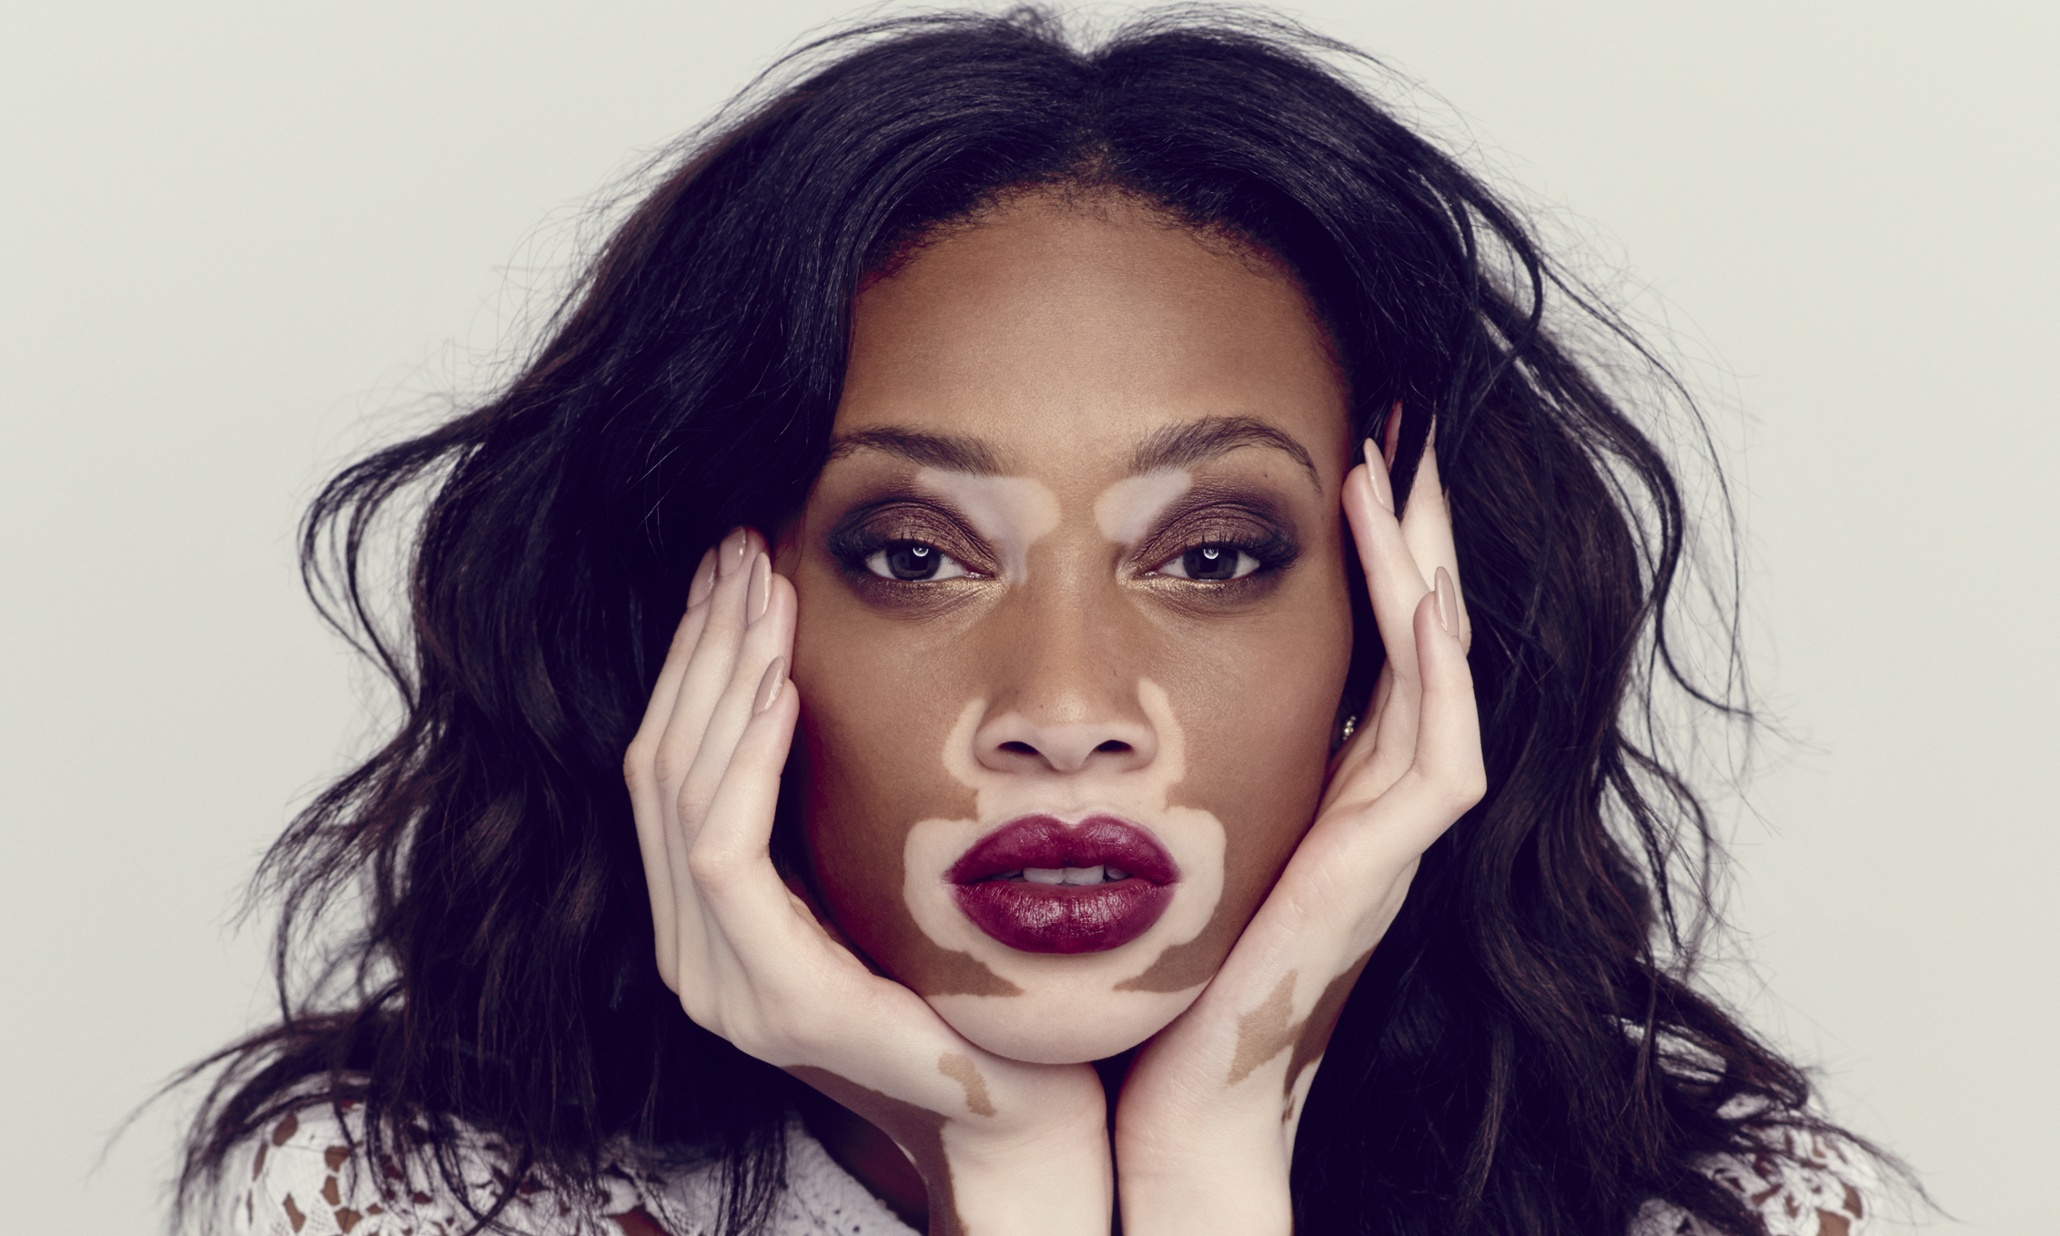 Chantelle model with vitiligo